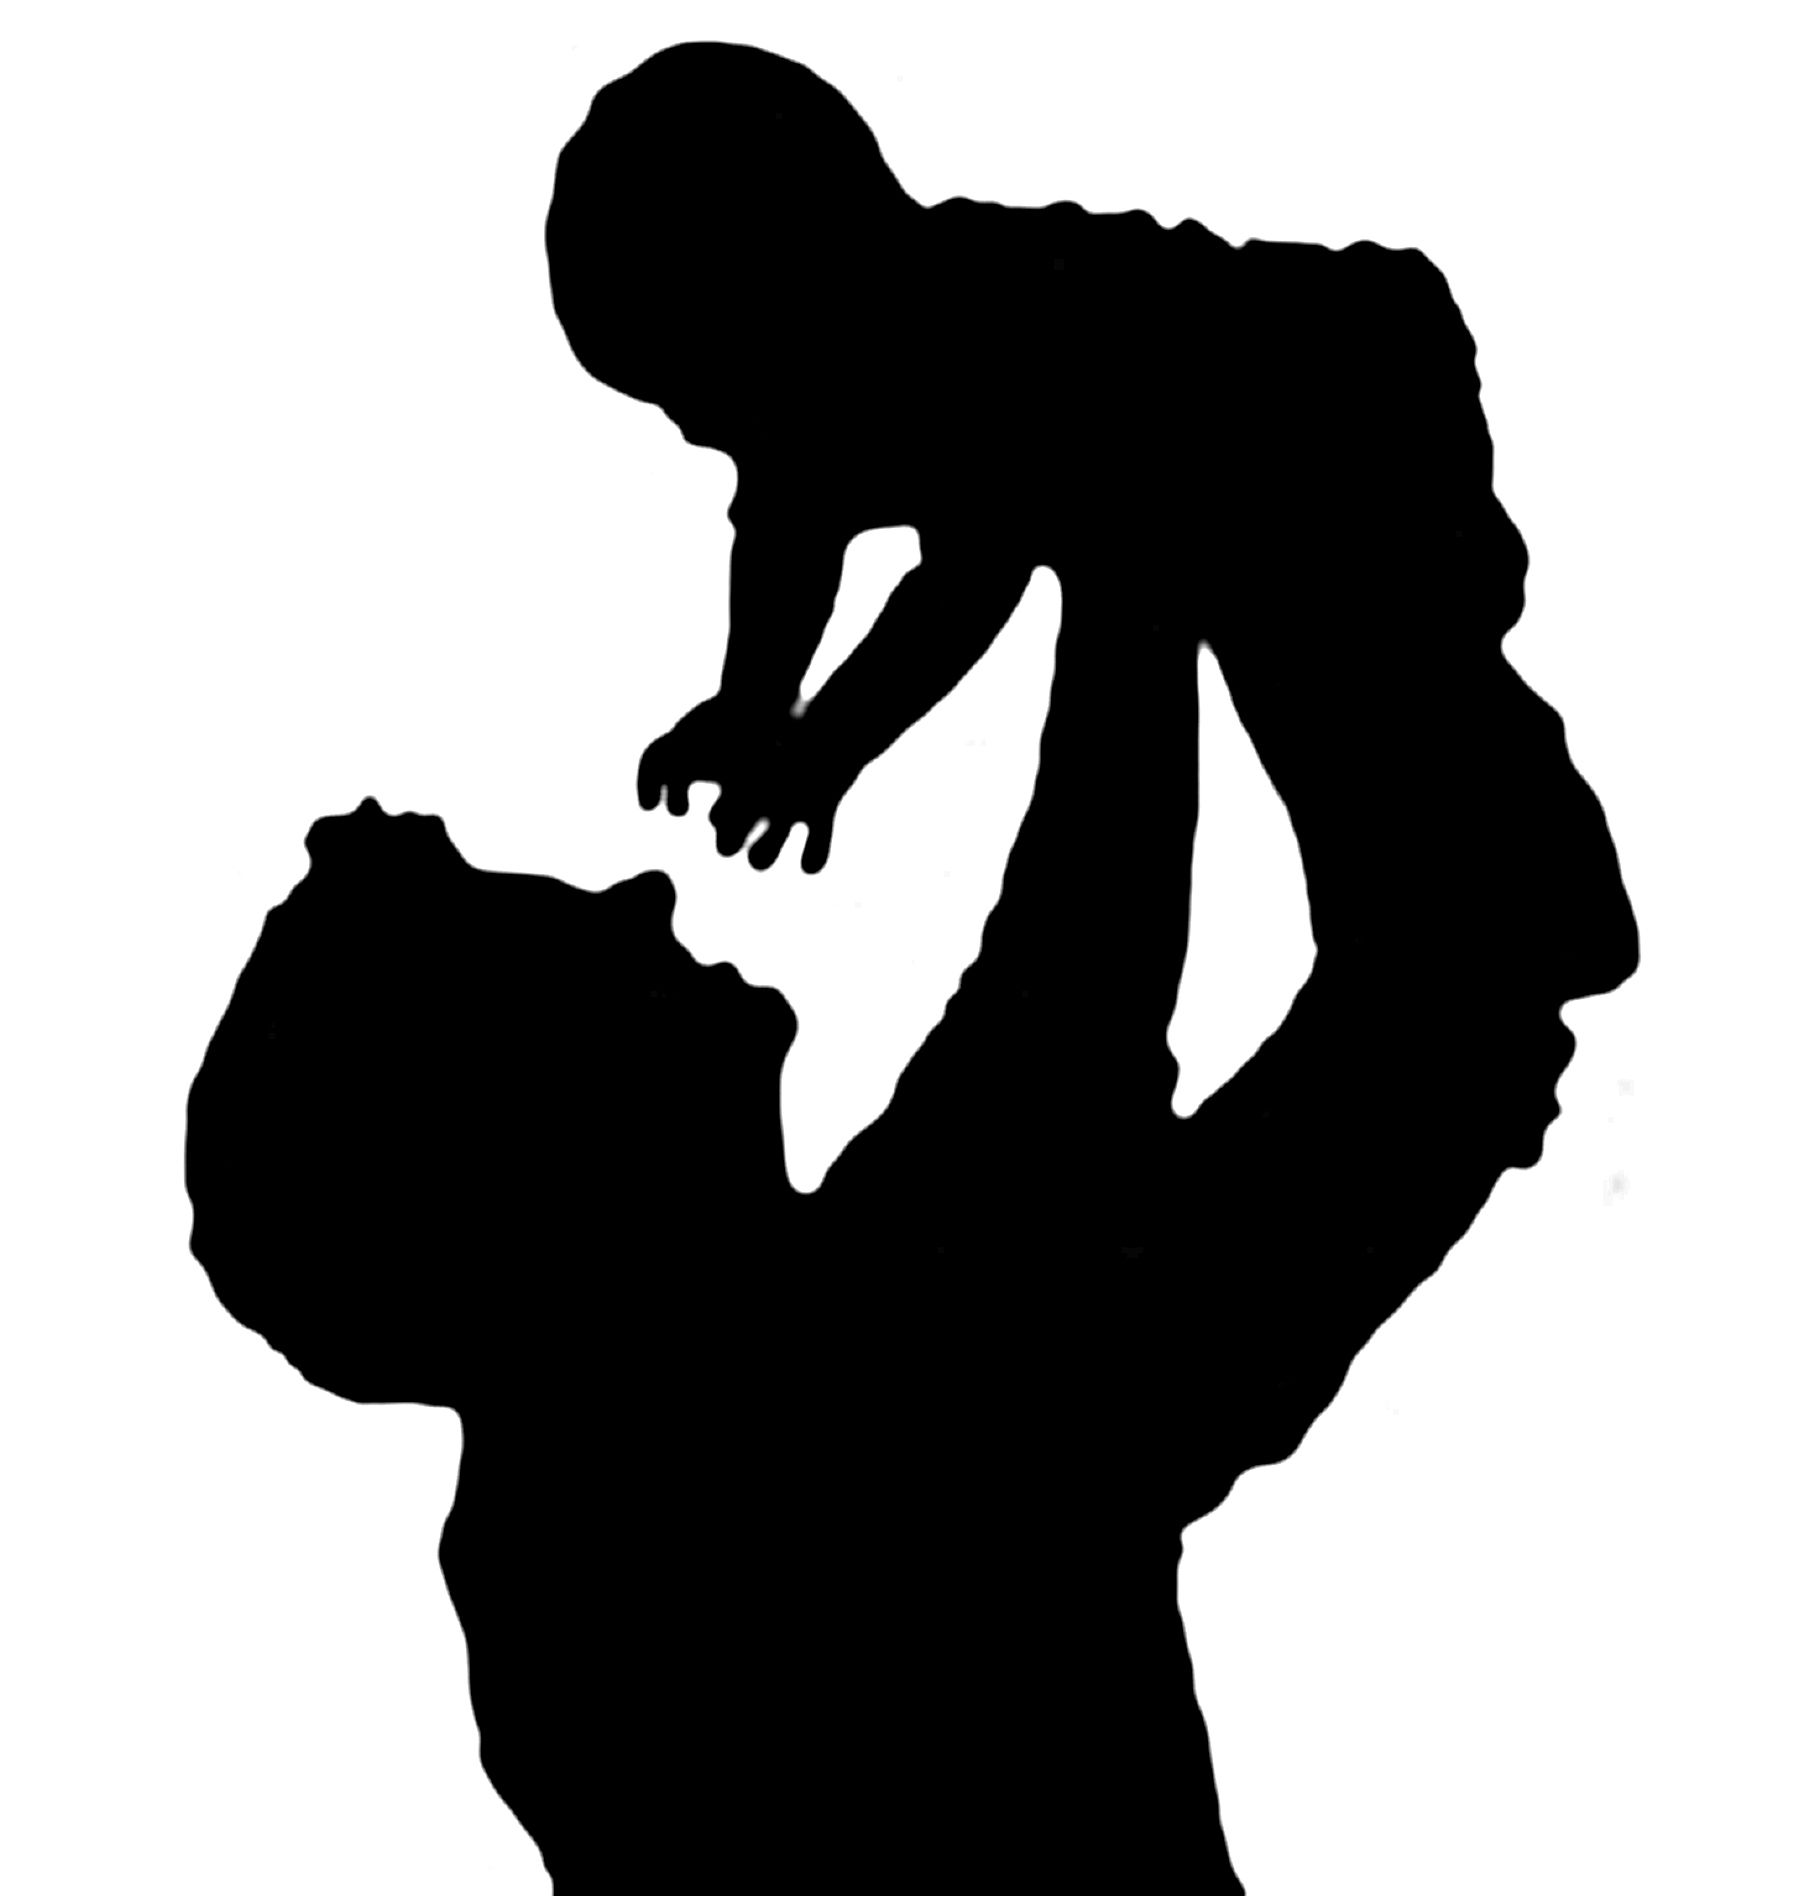 African american parents walking holding child hand clipart jpg royalty free download Silhouette of a father holding his child | Art | Baby silhouette ... jpg royalty free download